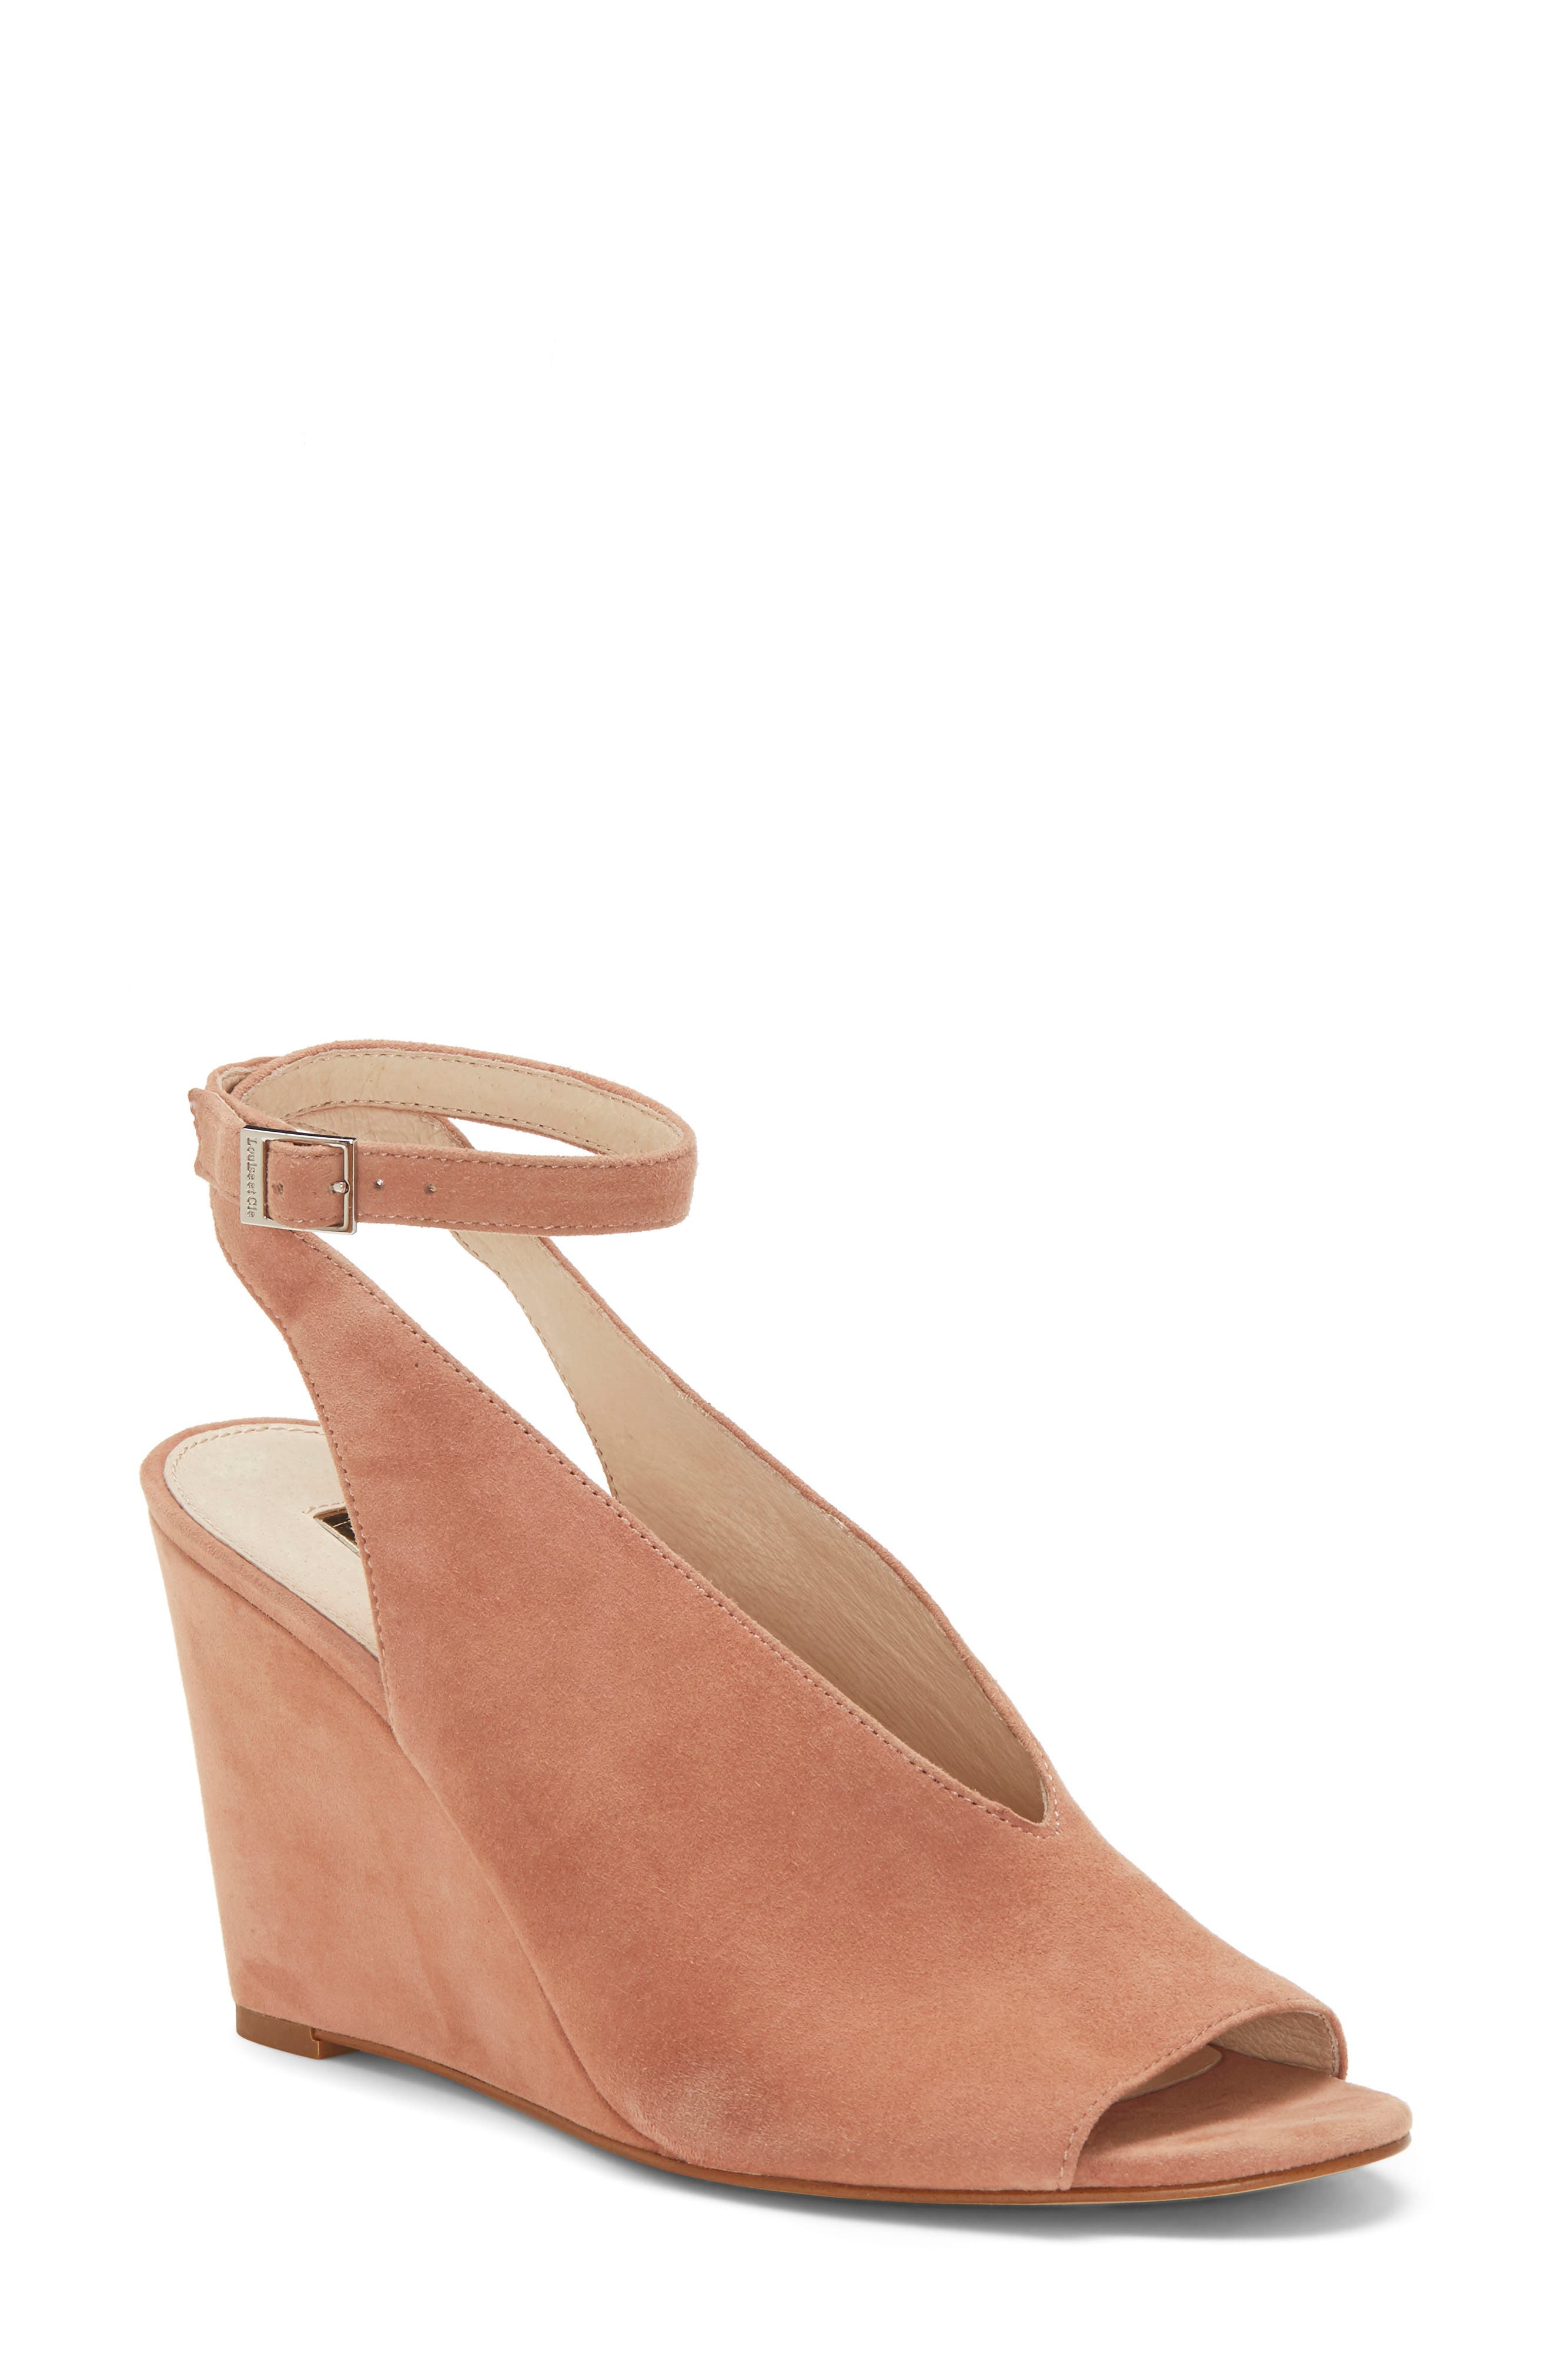 Louise Et Cie Ankle Strap Wedge Sandal- Beige